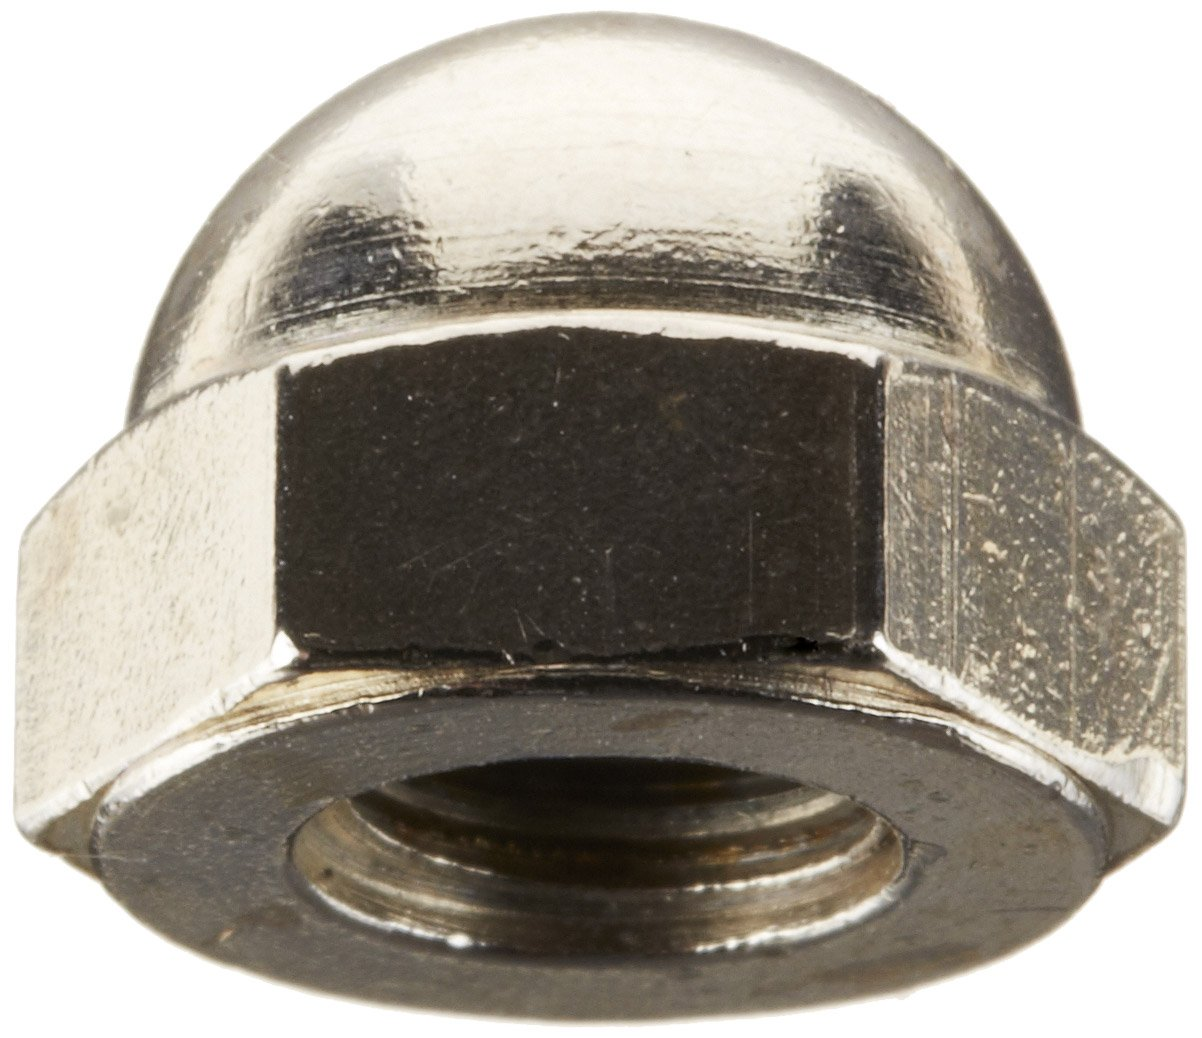 Hard-to-Find Fastener CNS-013-100 014973228569 Acorn Cap Nuts Pack of 100